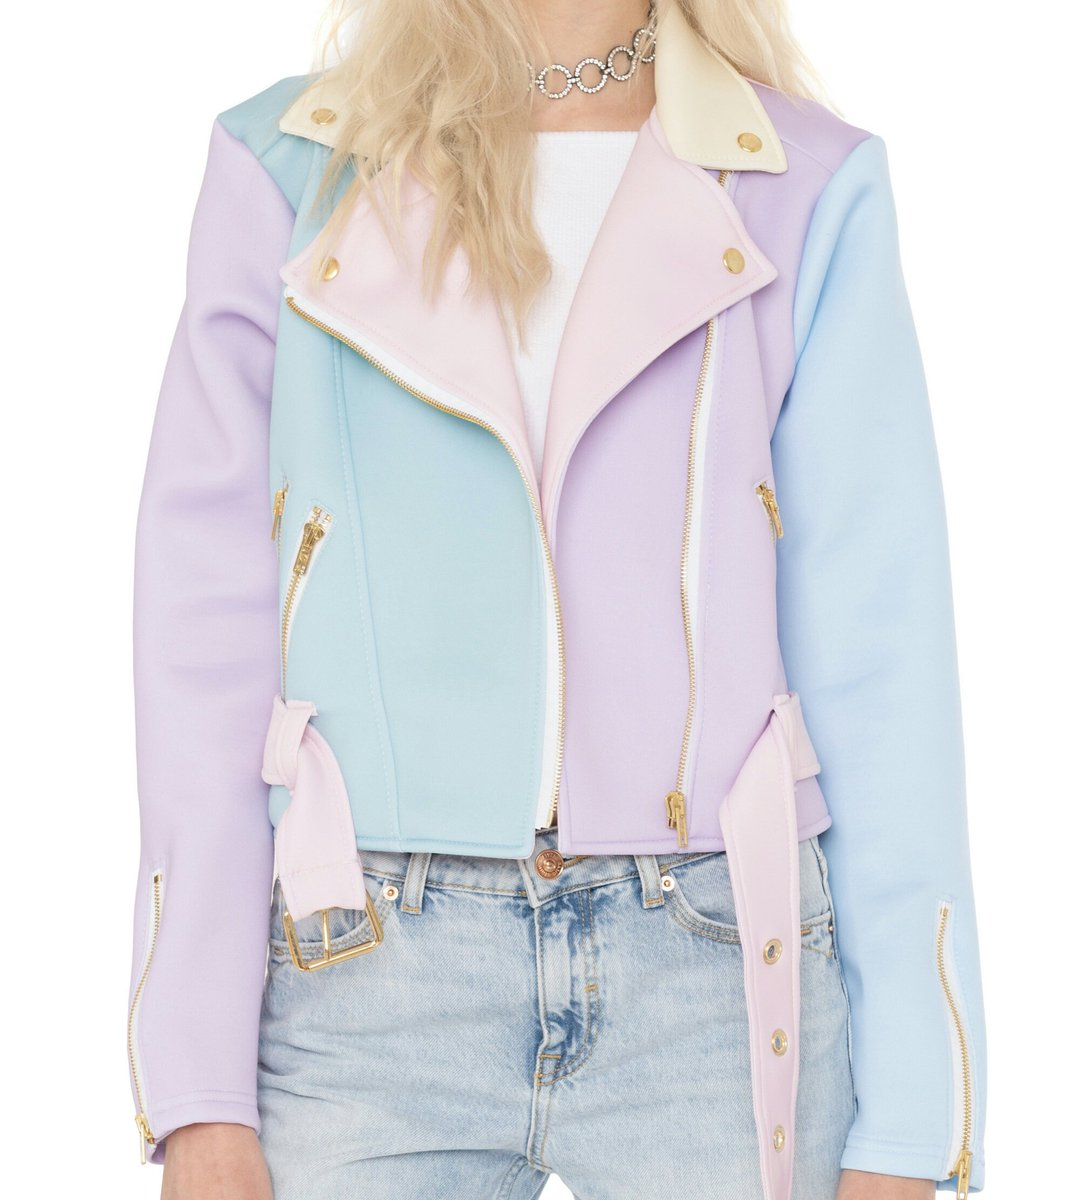 If bighit&#39;s stylists don&#39;t do a pastel clothing theme and put joon in this, I have an event planned <br>http://pic.twitter.com/yI49tRnEx9